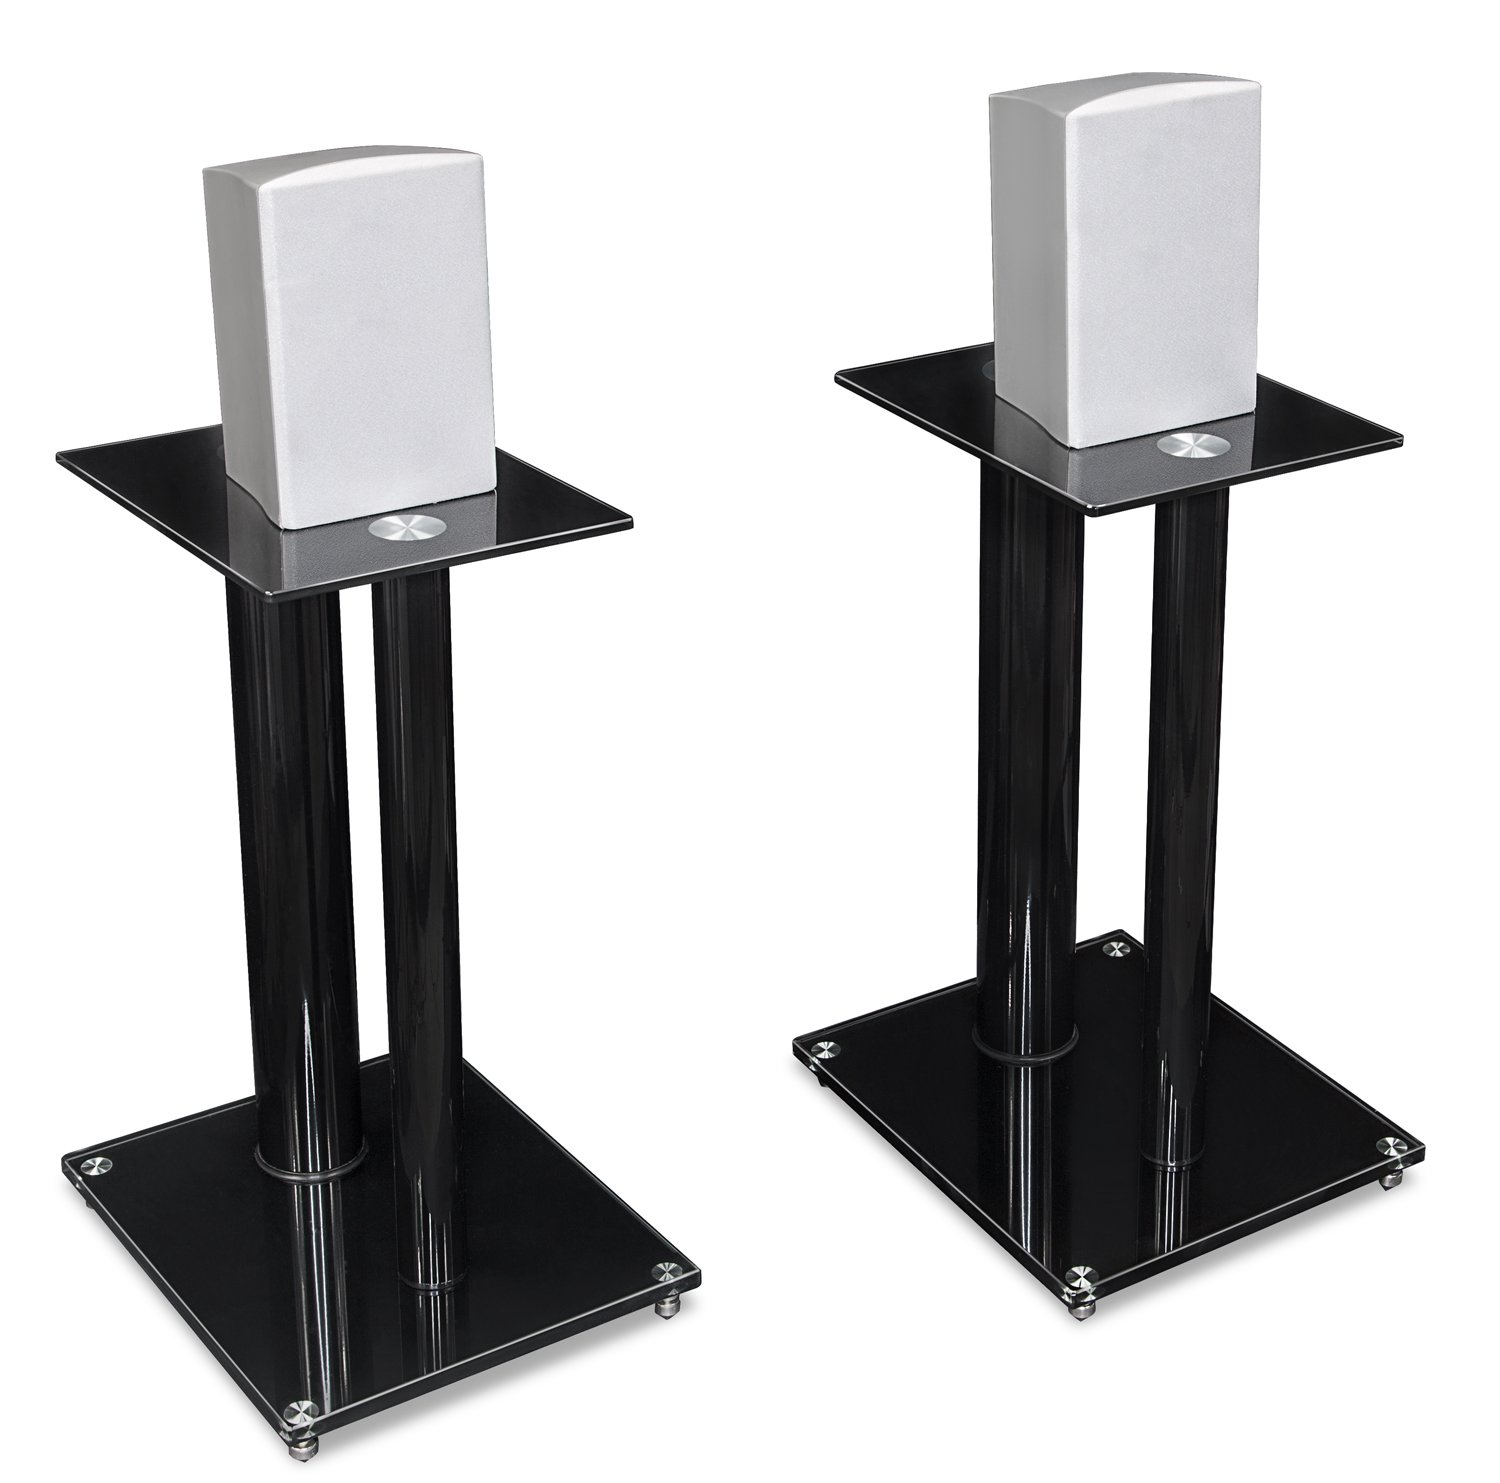 Mount-It! MI-28 Speaker Stands